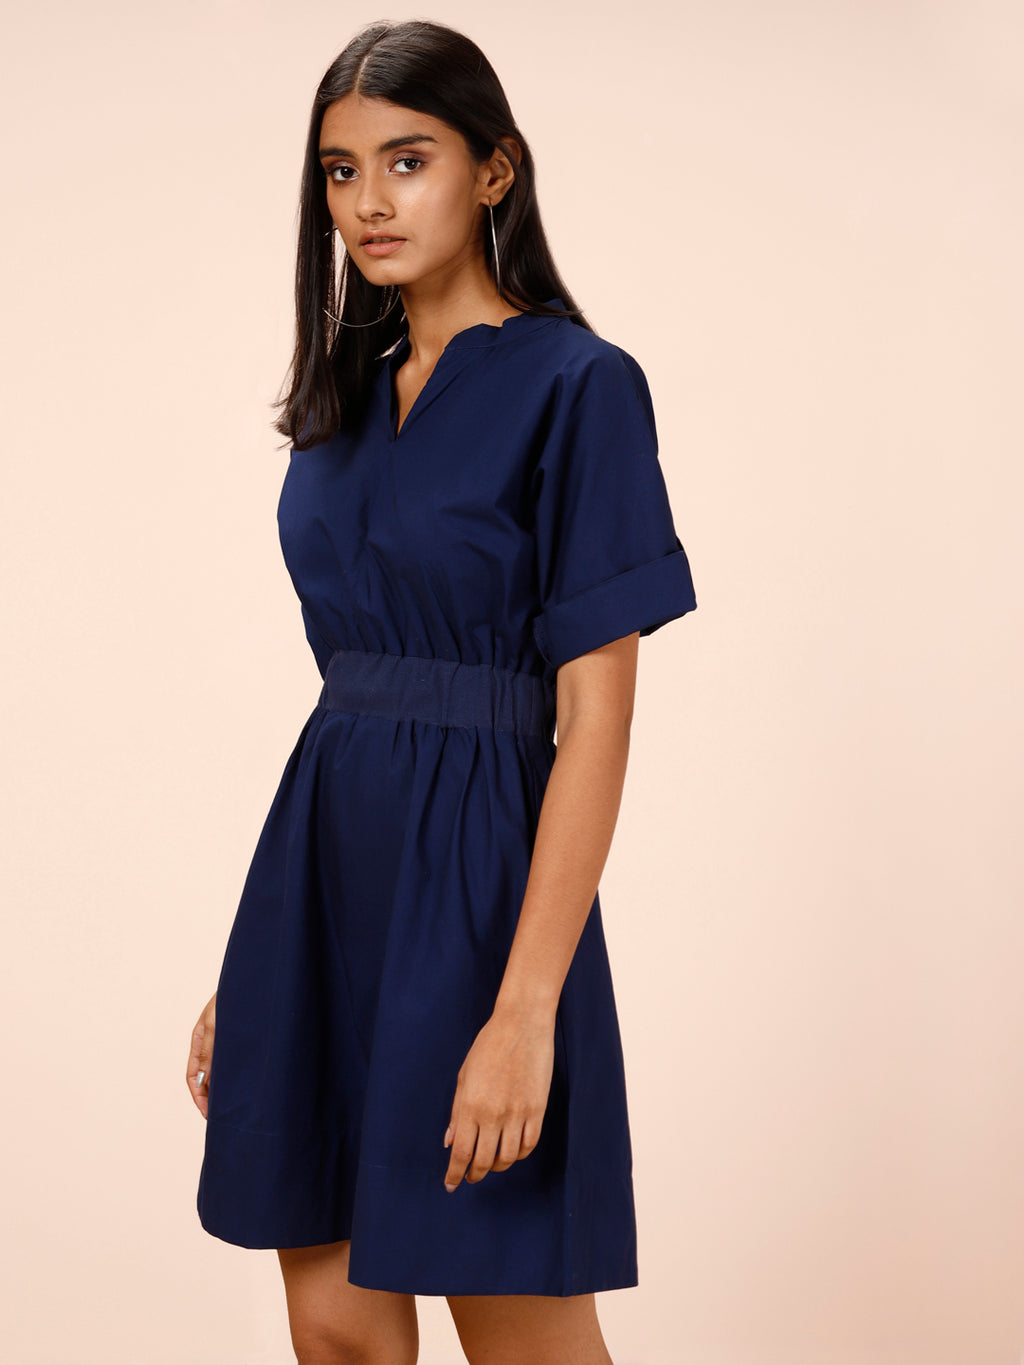 NAVY BLUE SOLID FIT AND FLARE DRESS